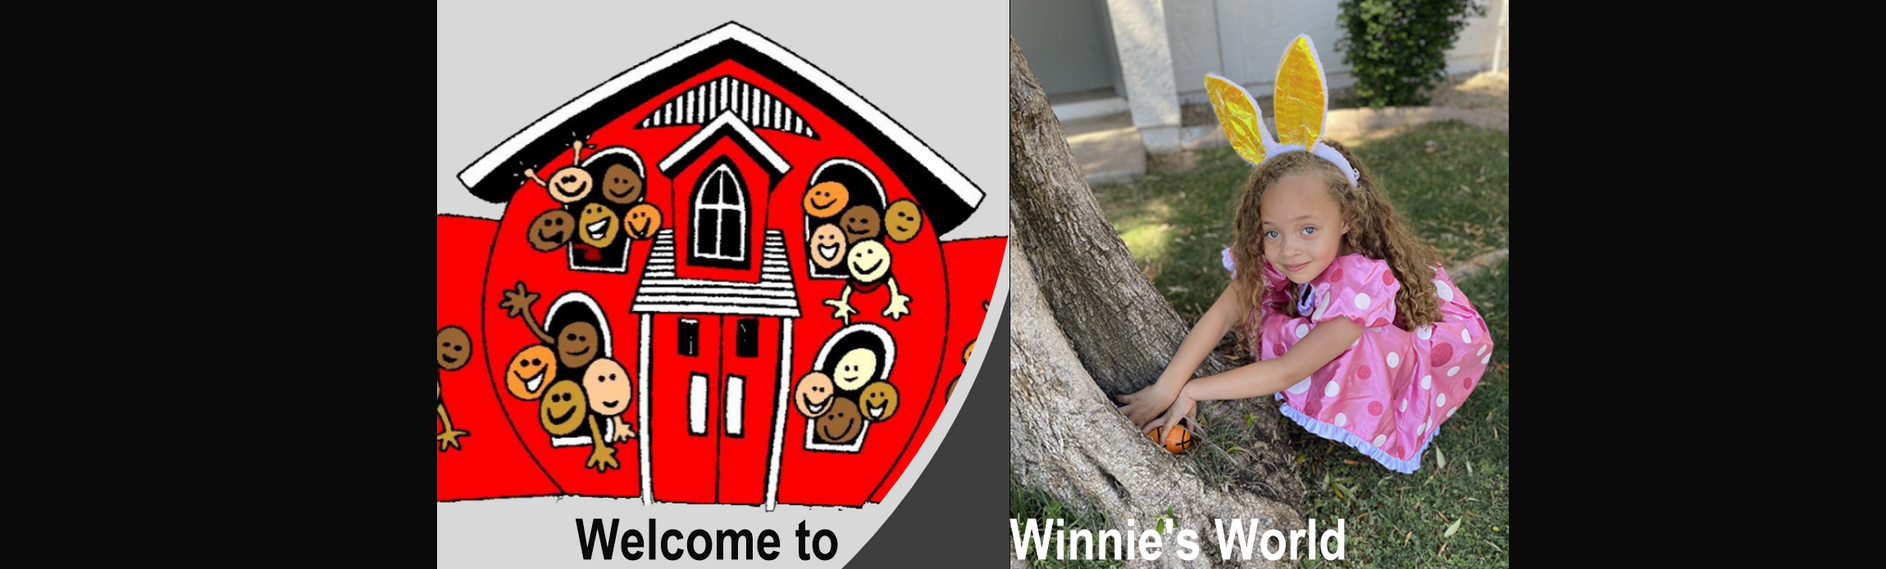 Welcome to Winnie's World.png